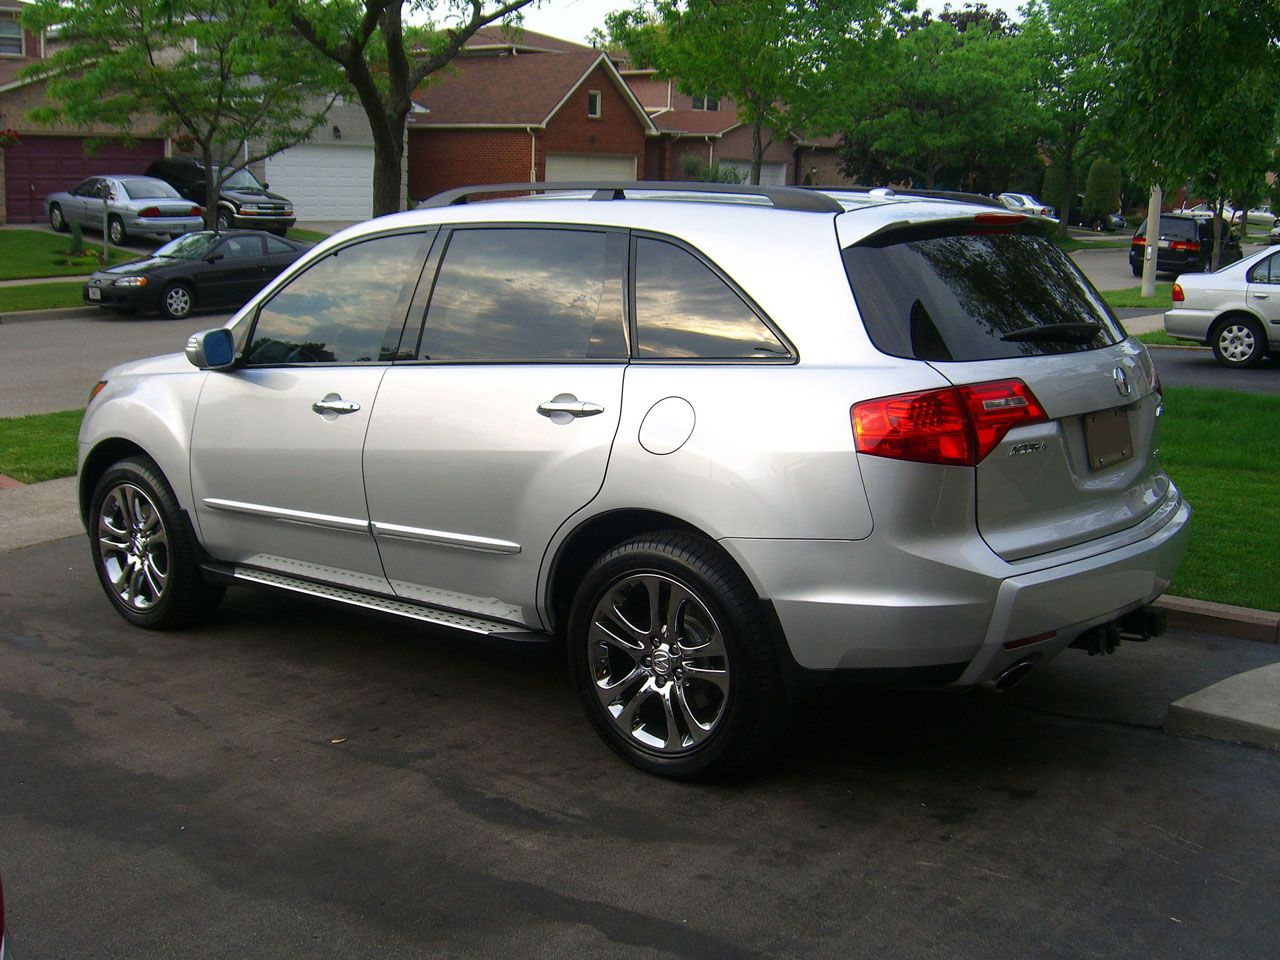 2009 acura mdx rims pics of 2nd generation mdx with aftermarket rims qtr